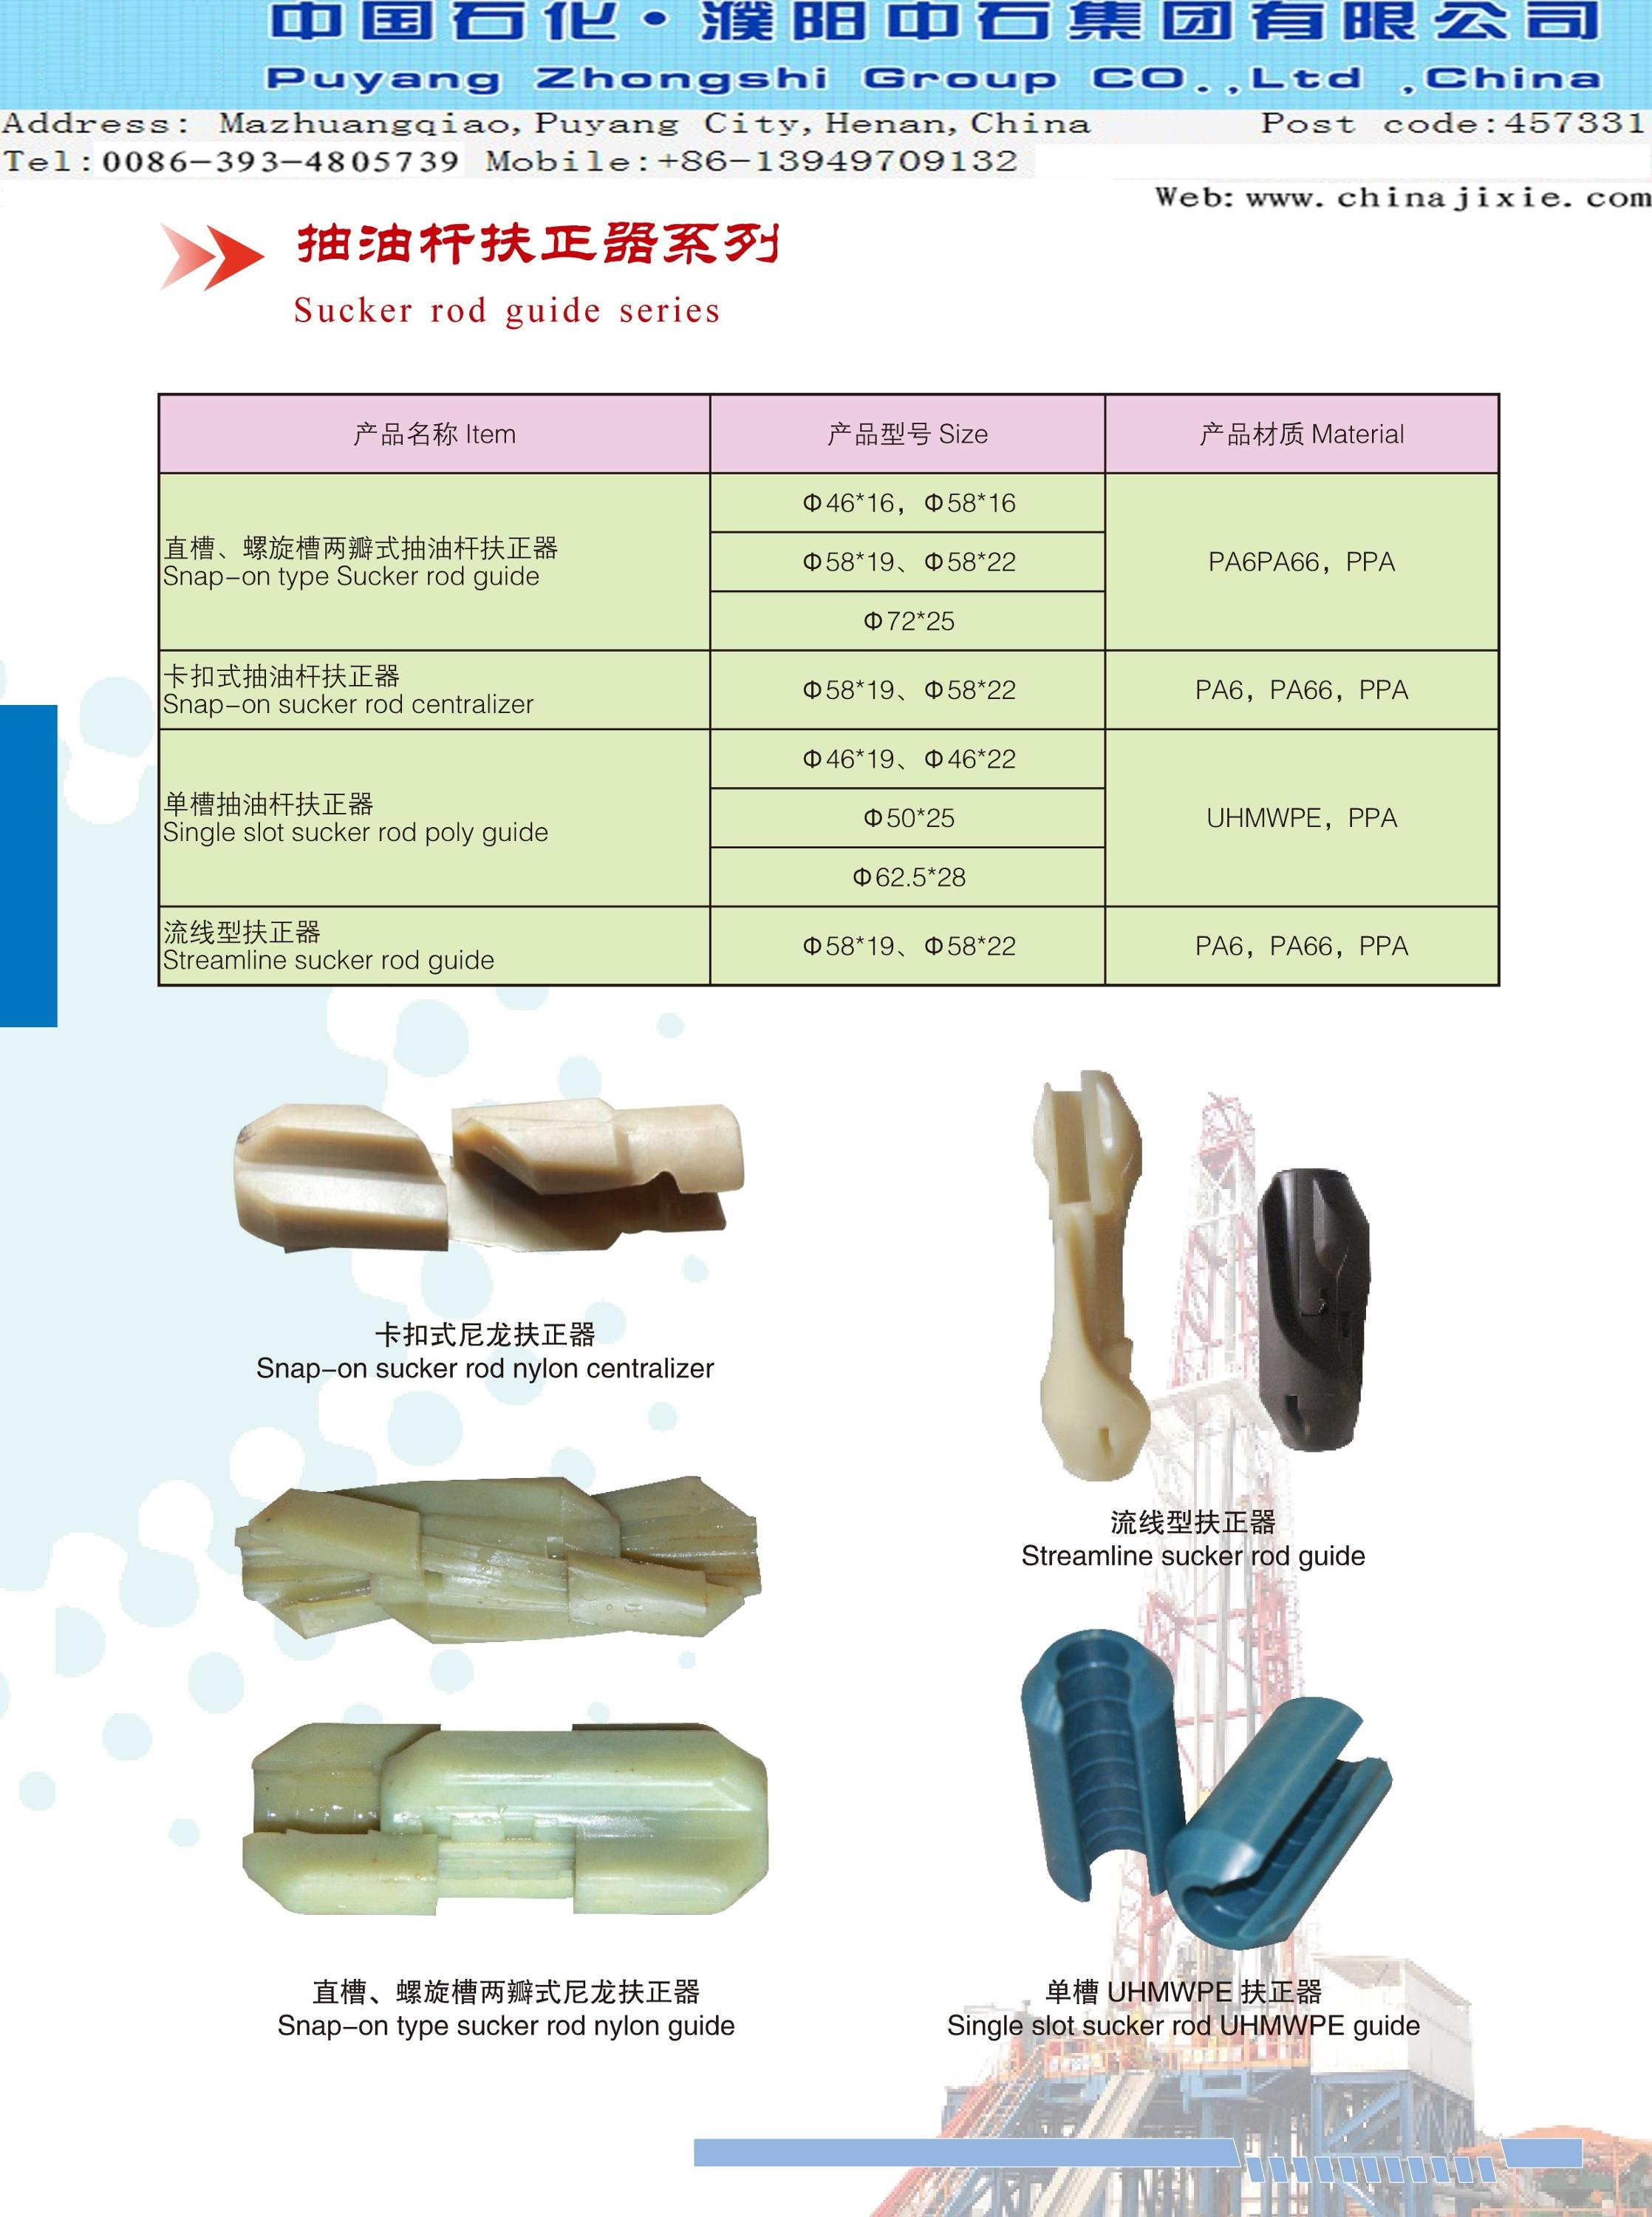 Fine quality and wholesale API Sucker rod Centralizer